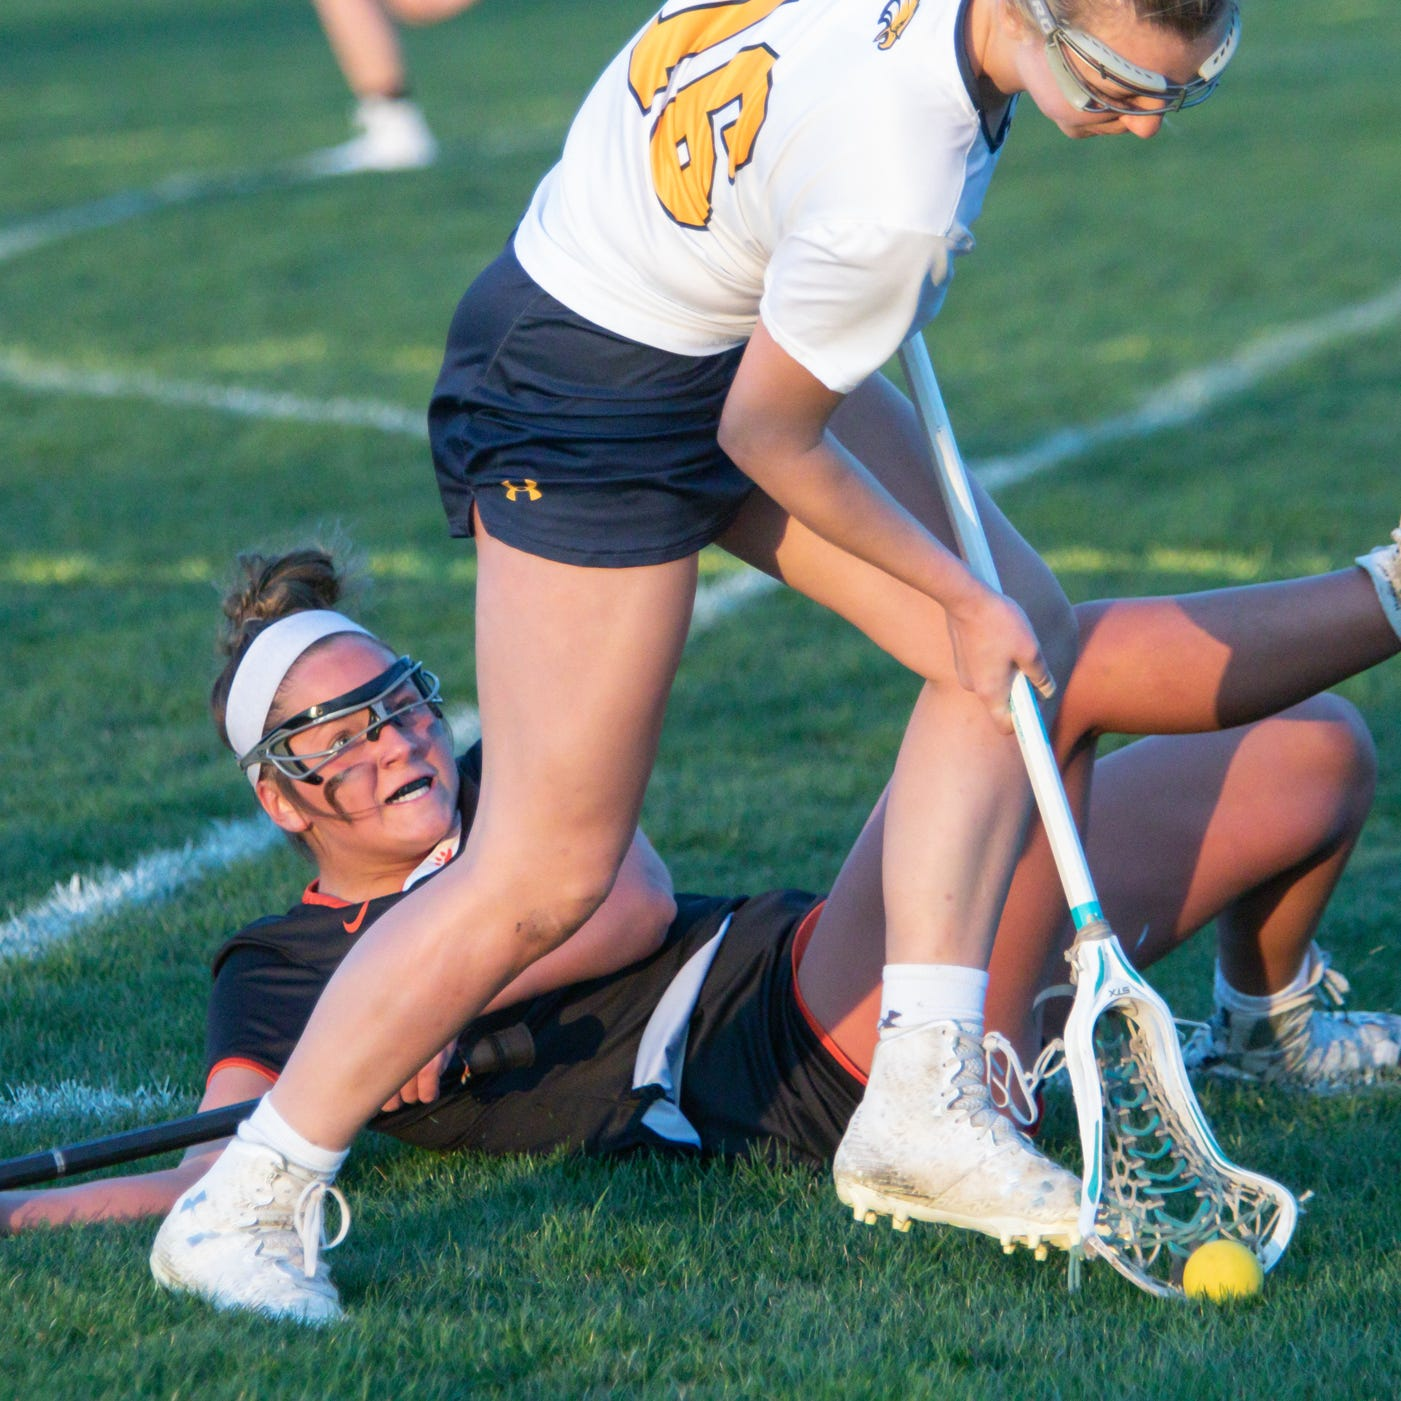 Motivated by losses, Salazar scores 7 goals in Hartland lacrosse win over Brighton